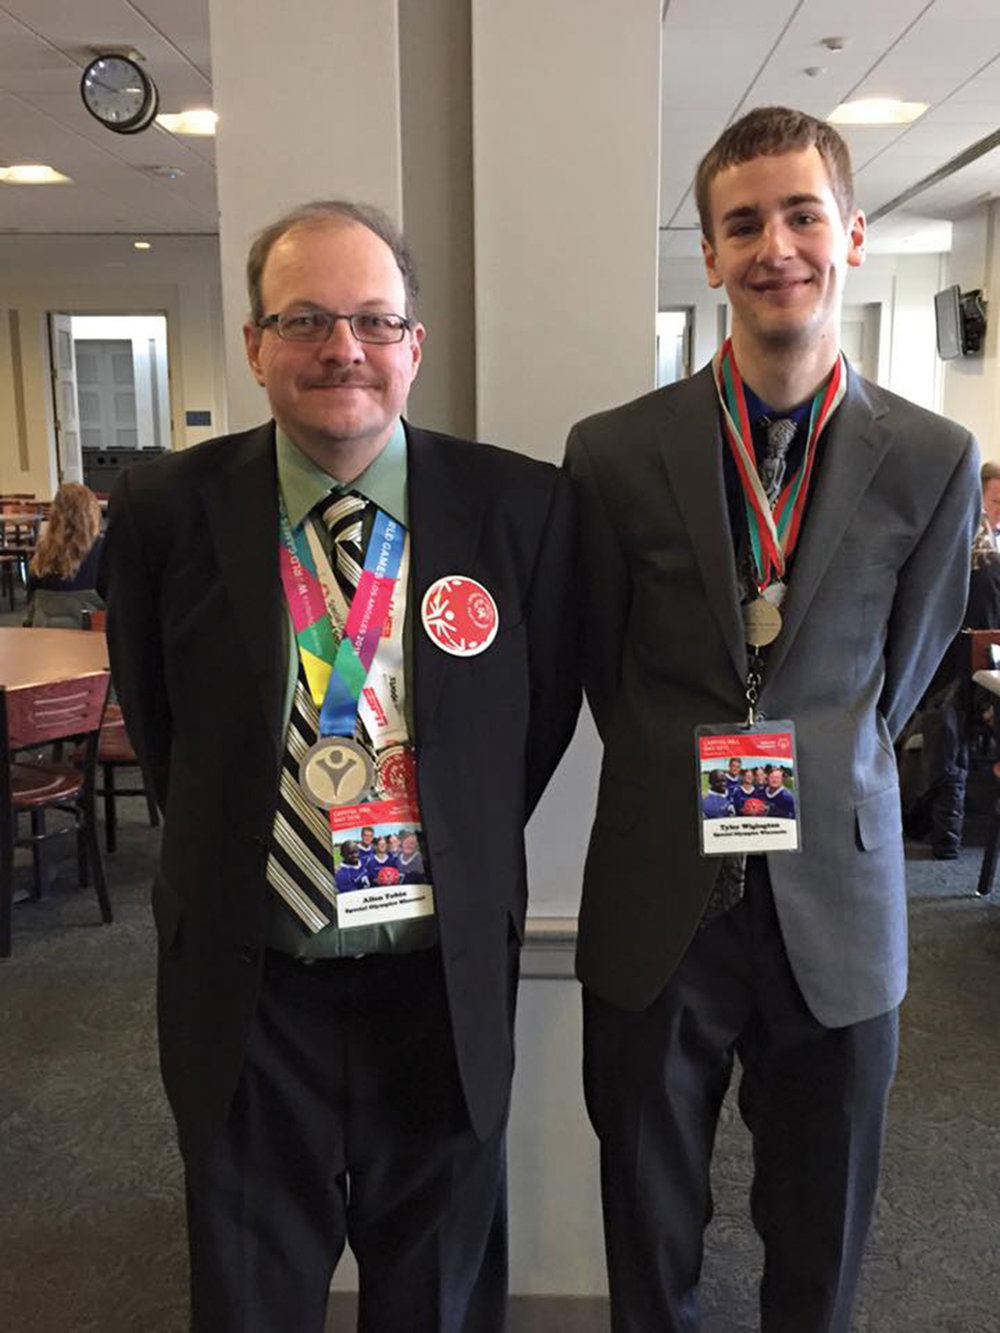 Allen Tobin, left, traveled to Washington, D.C. for Special Olympics Hill Day to lobby for more funding